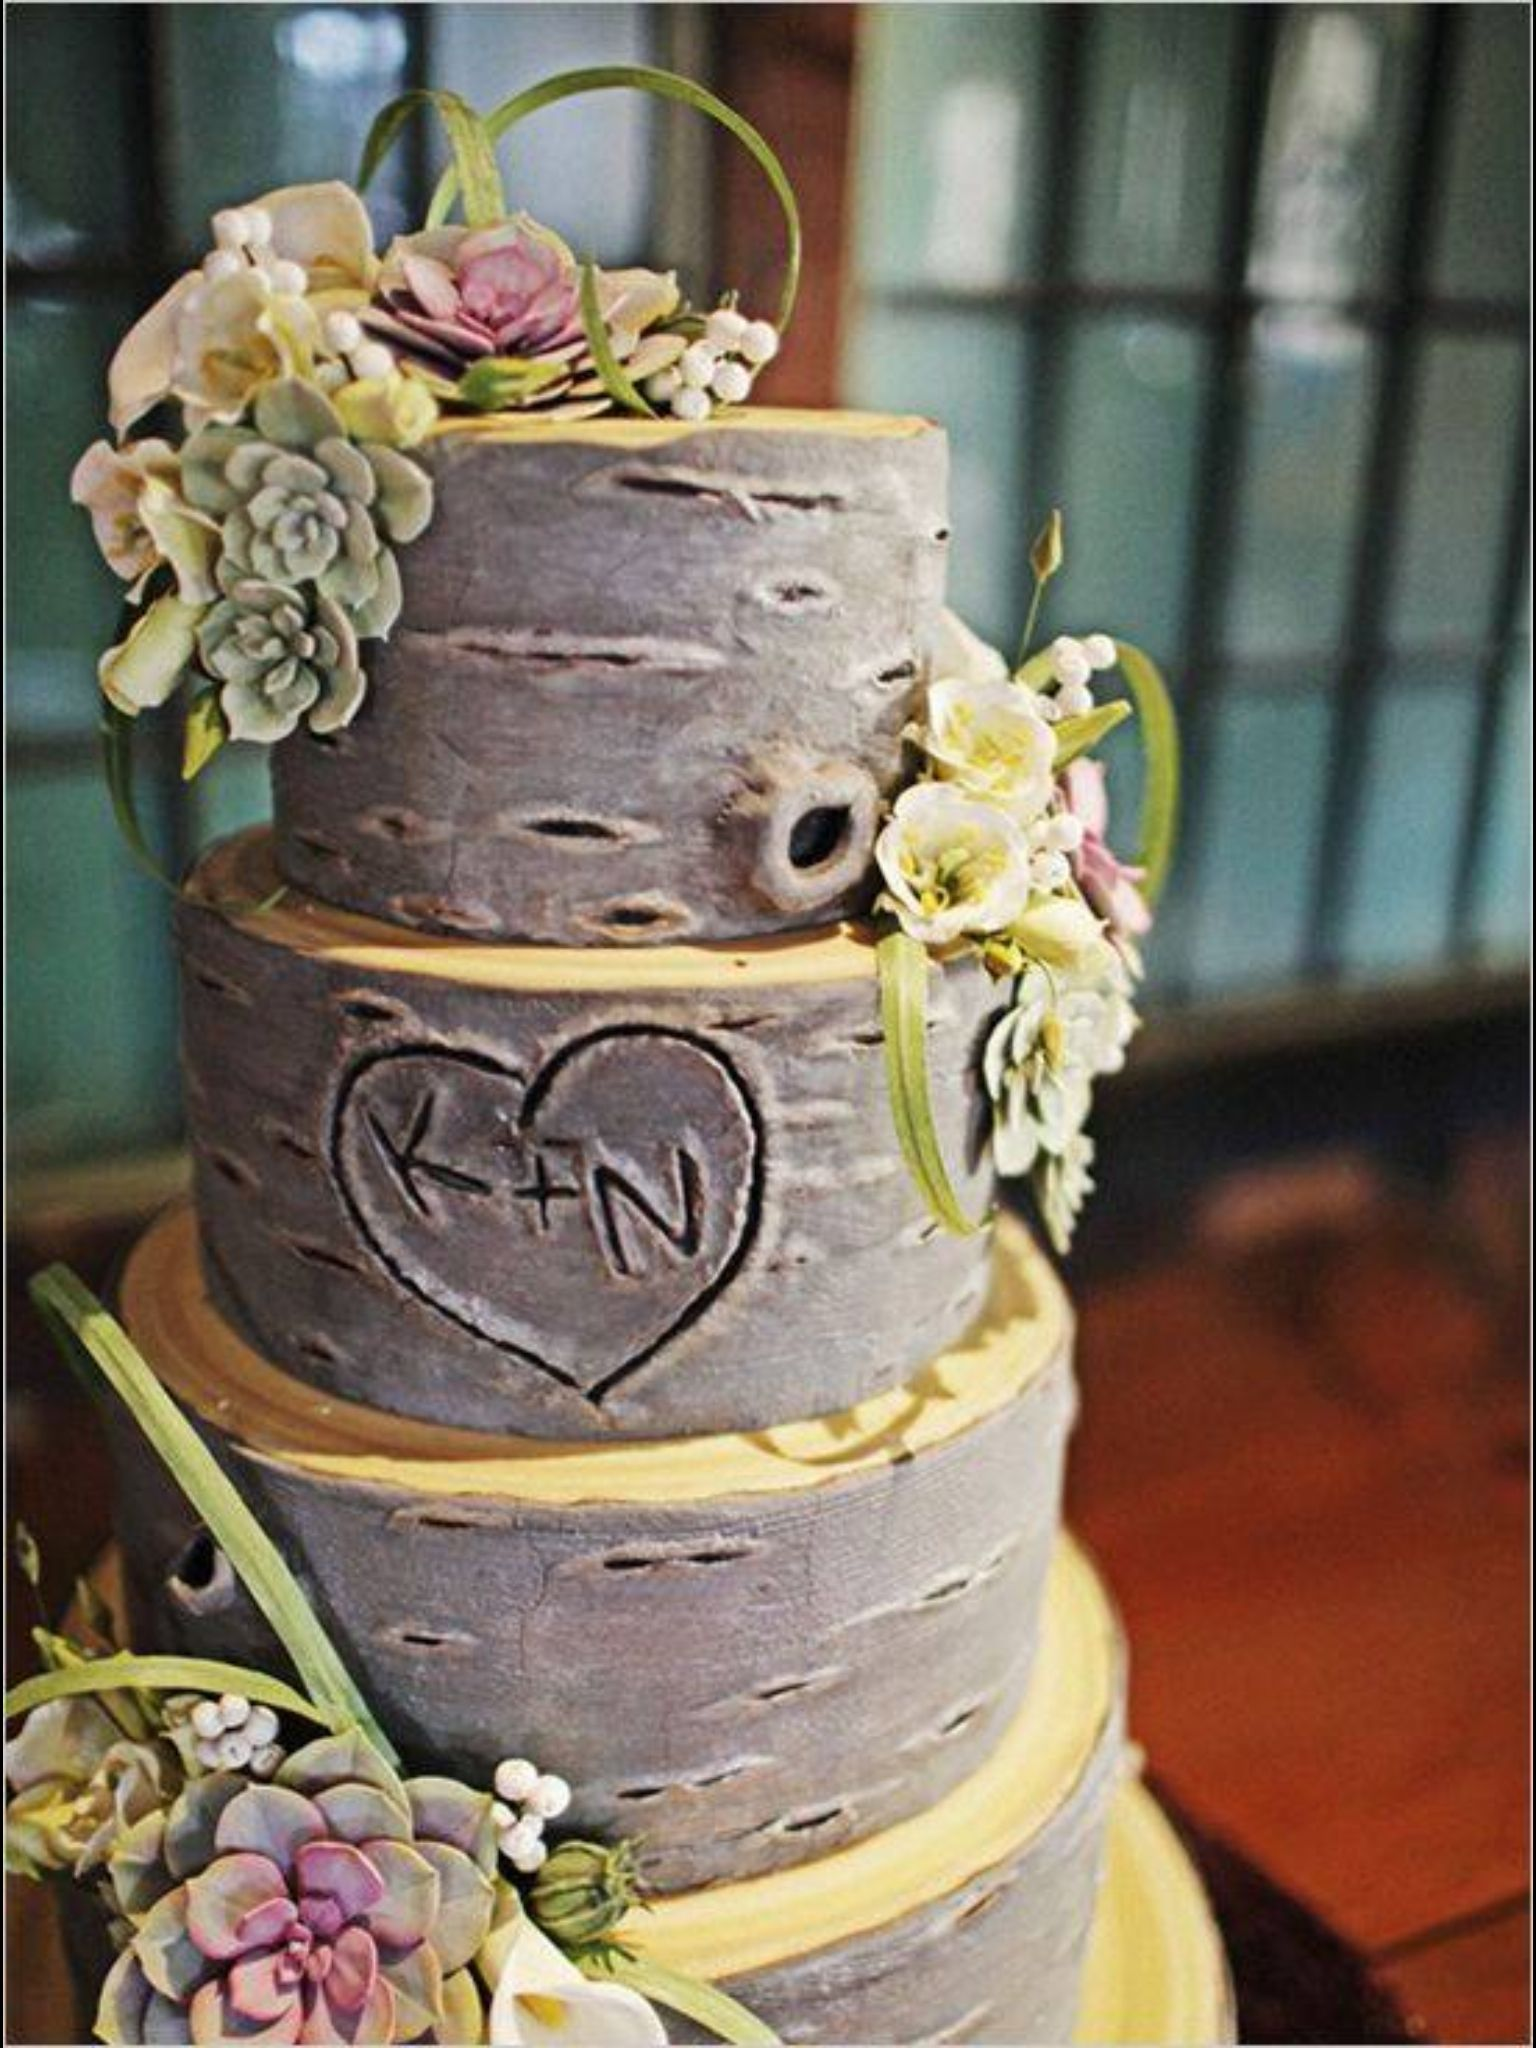 Awesome tree design would suit theme perfectly wedding cakes